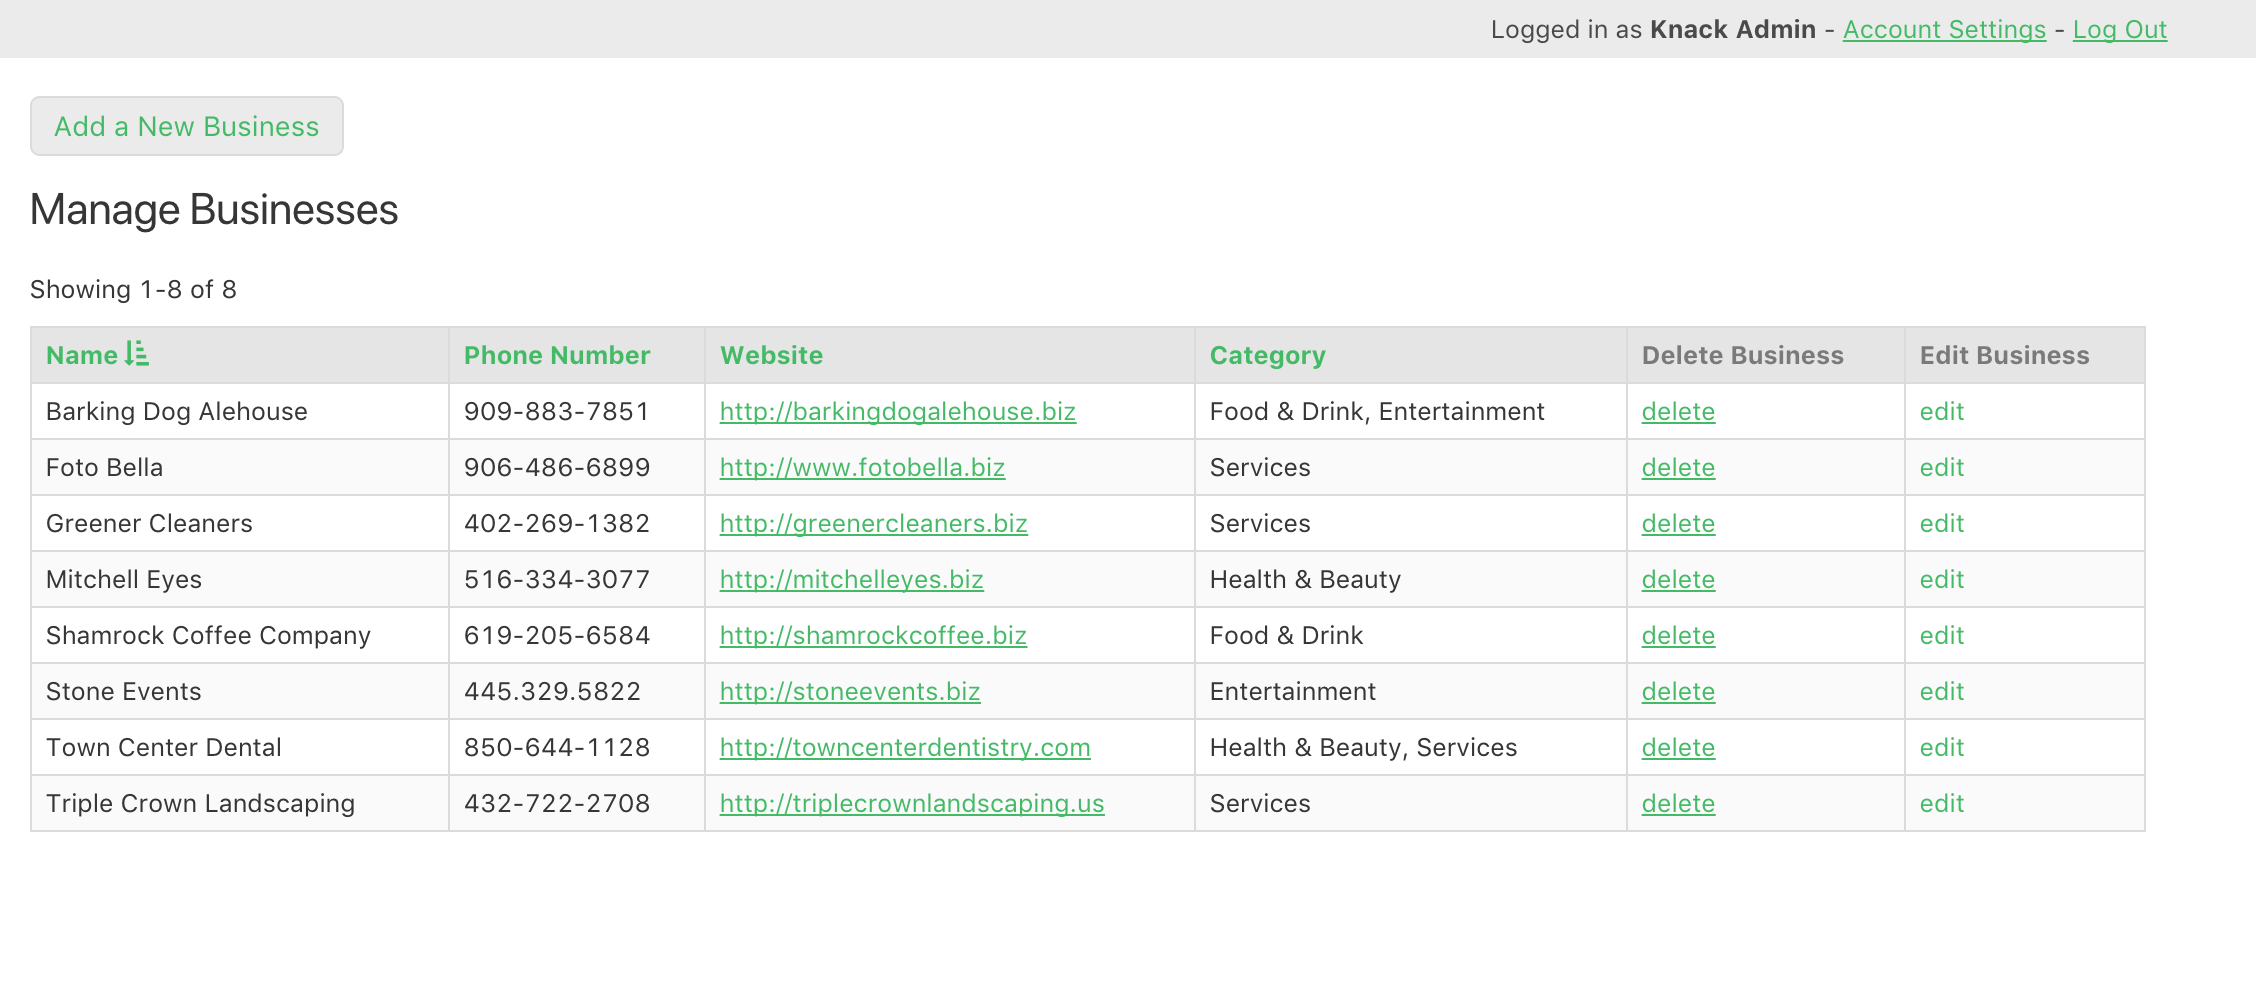 Admins can log in to add and edit the business listings.